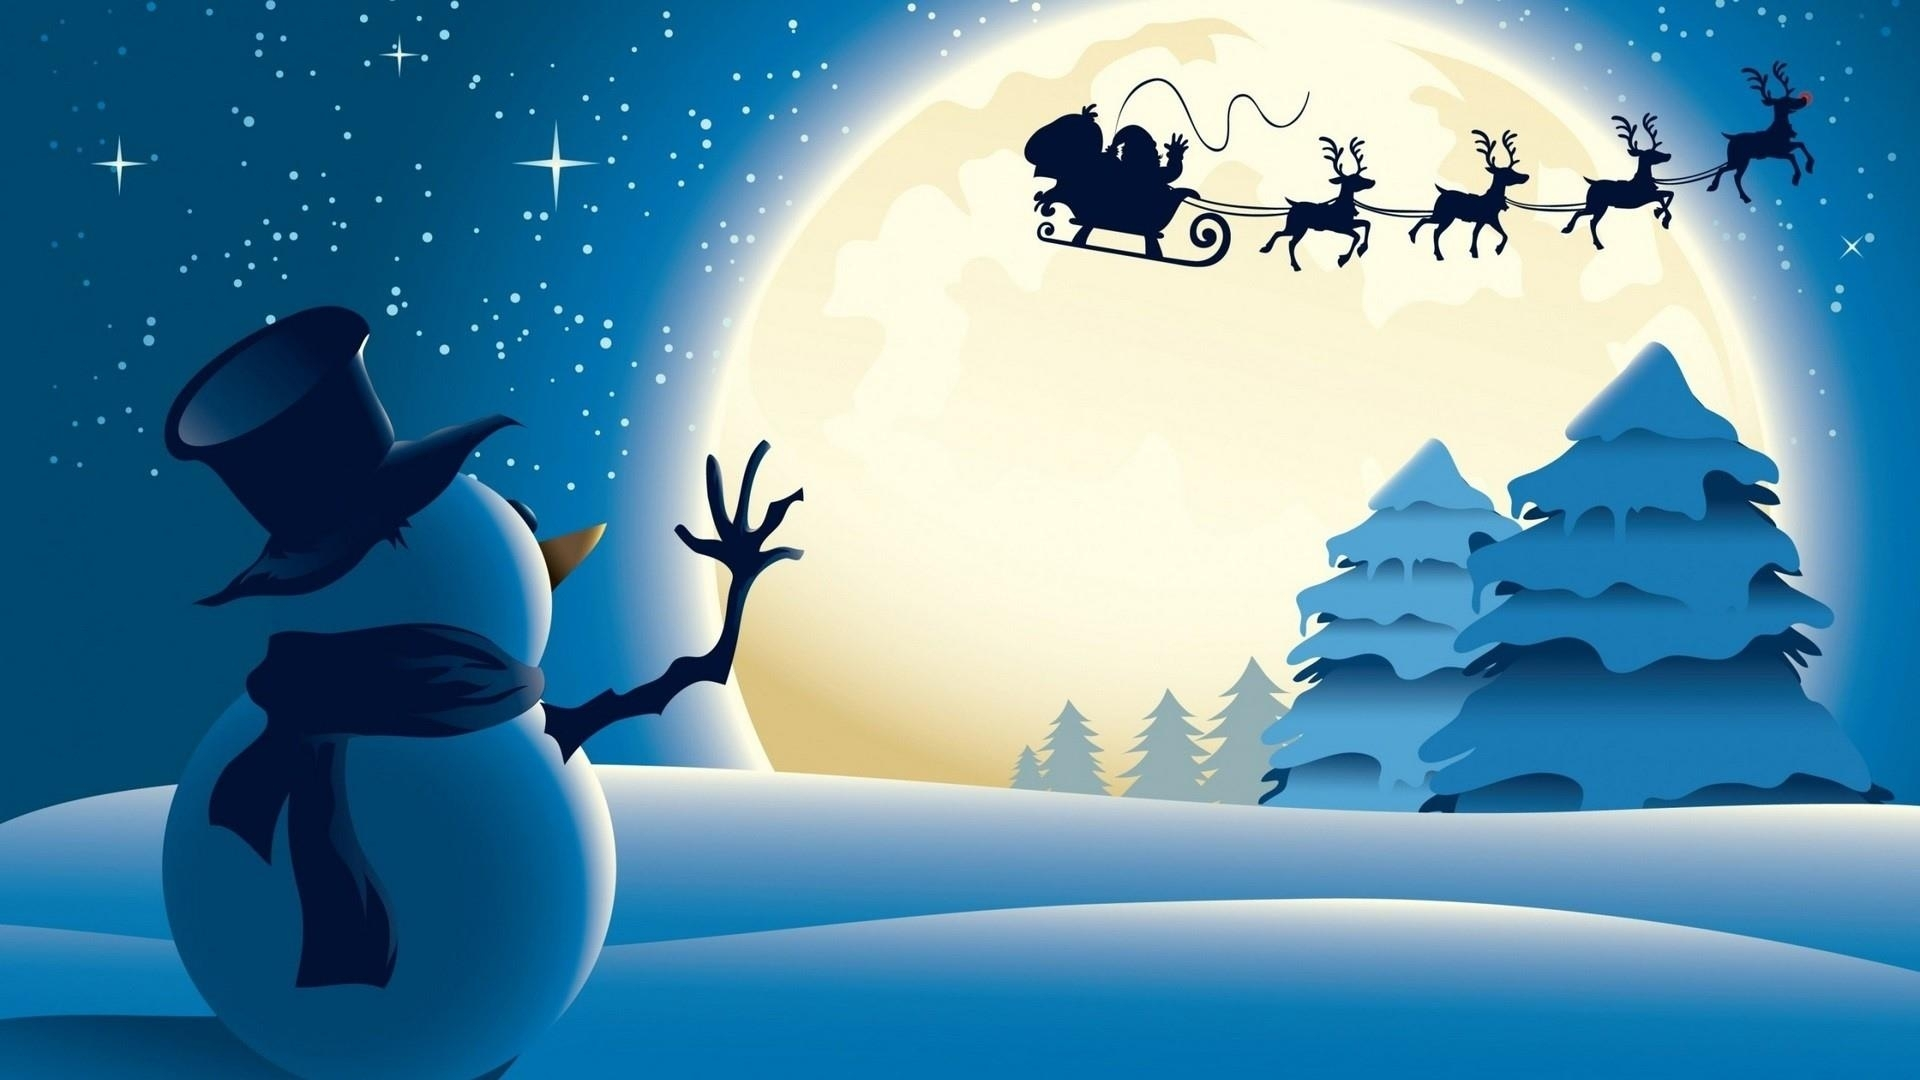 Santa Claus Fly By The Moon